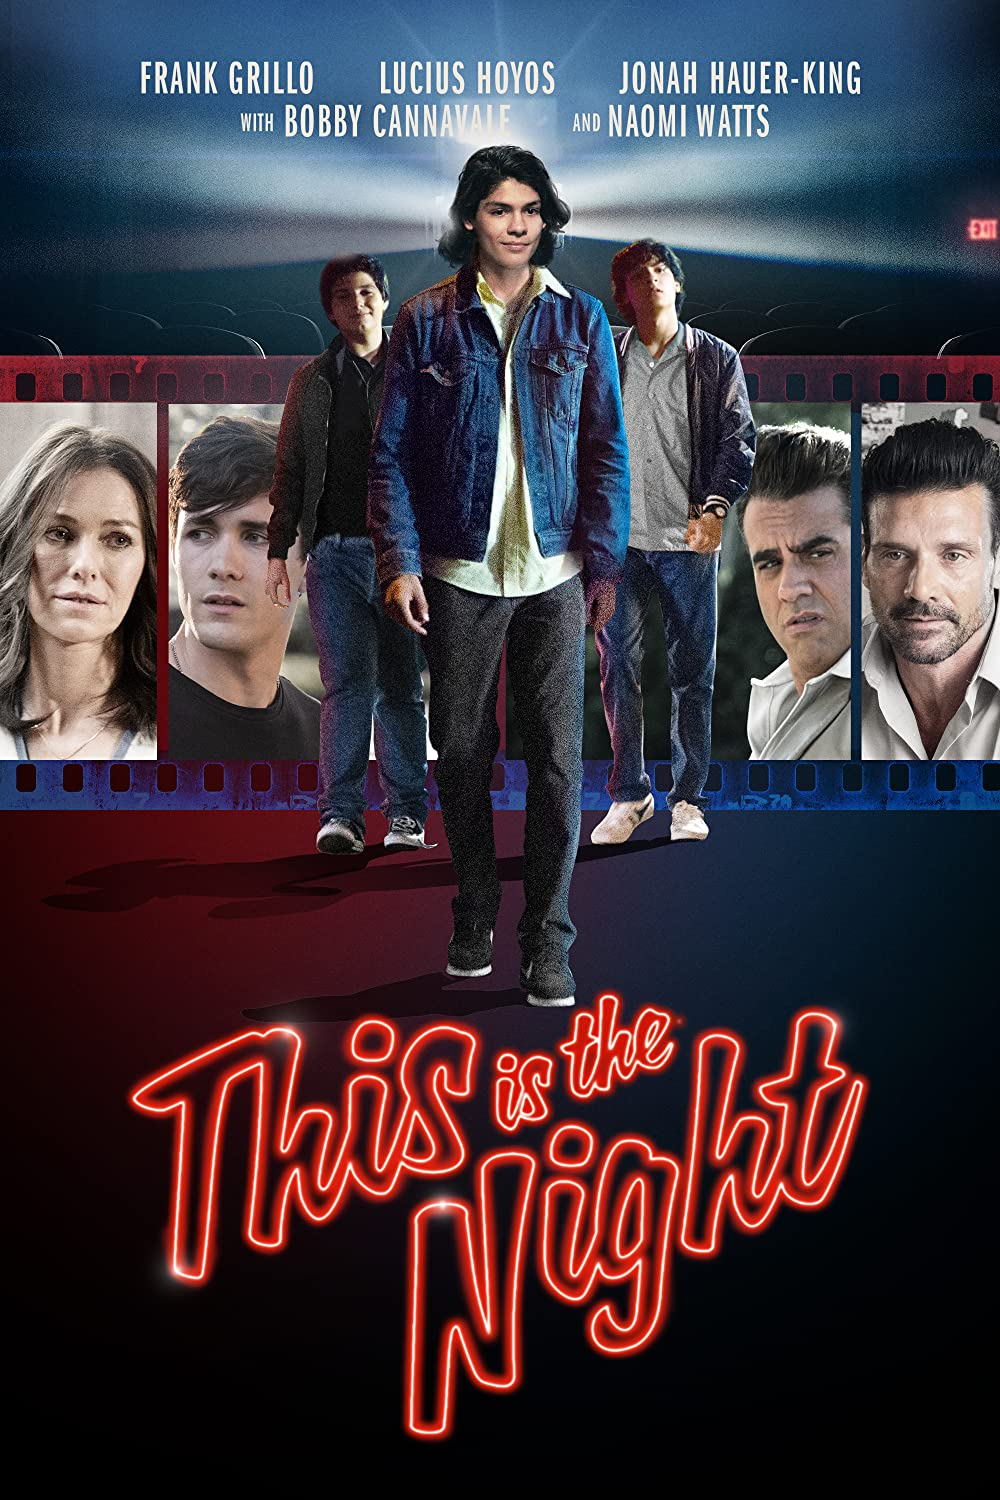 Download This Is the Night (2021) Full Movie [In English] With Hindi Subtitles | WebRip 720p [1XBET] FREE on 1XCinema.com & KatMovieHD.sk